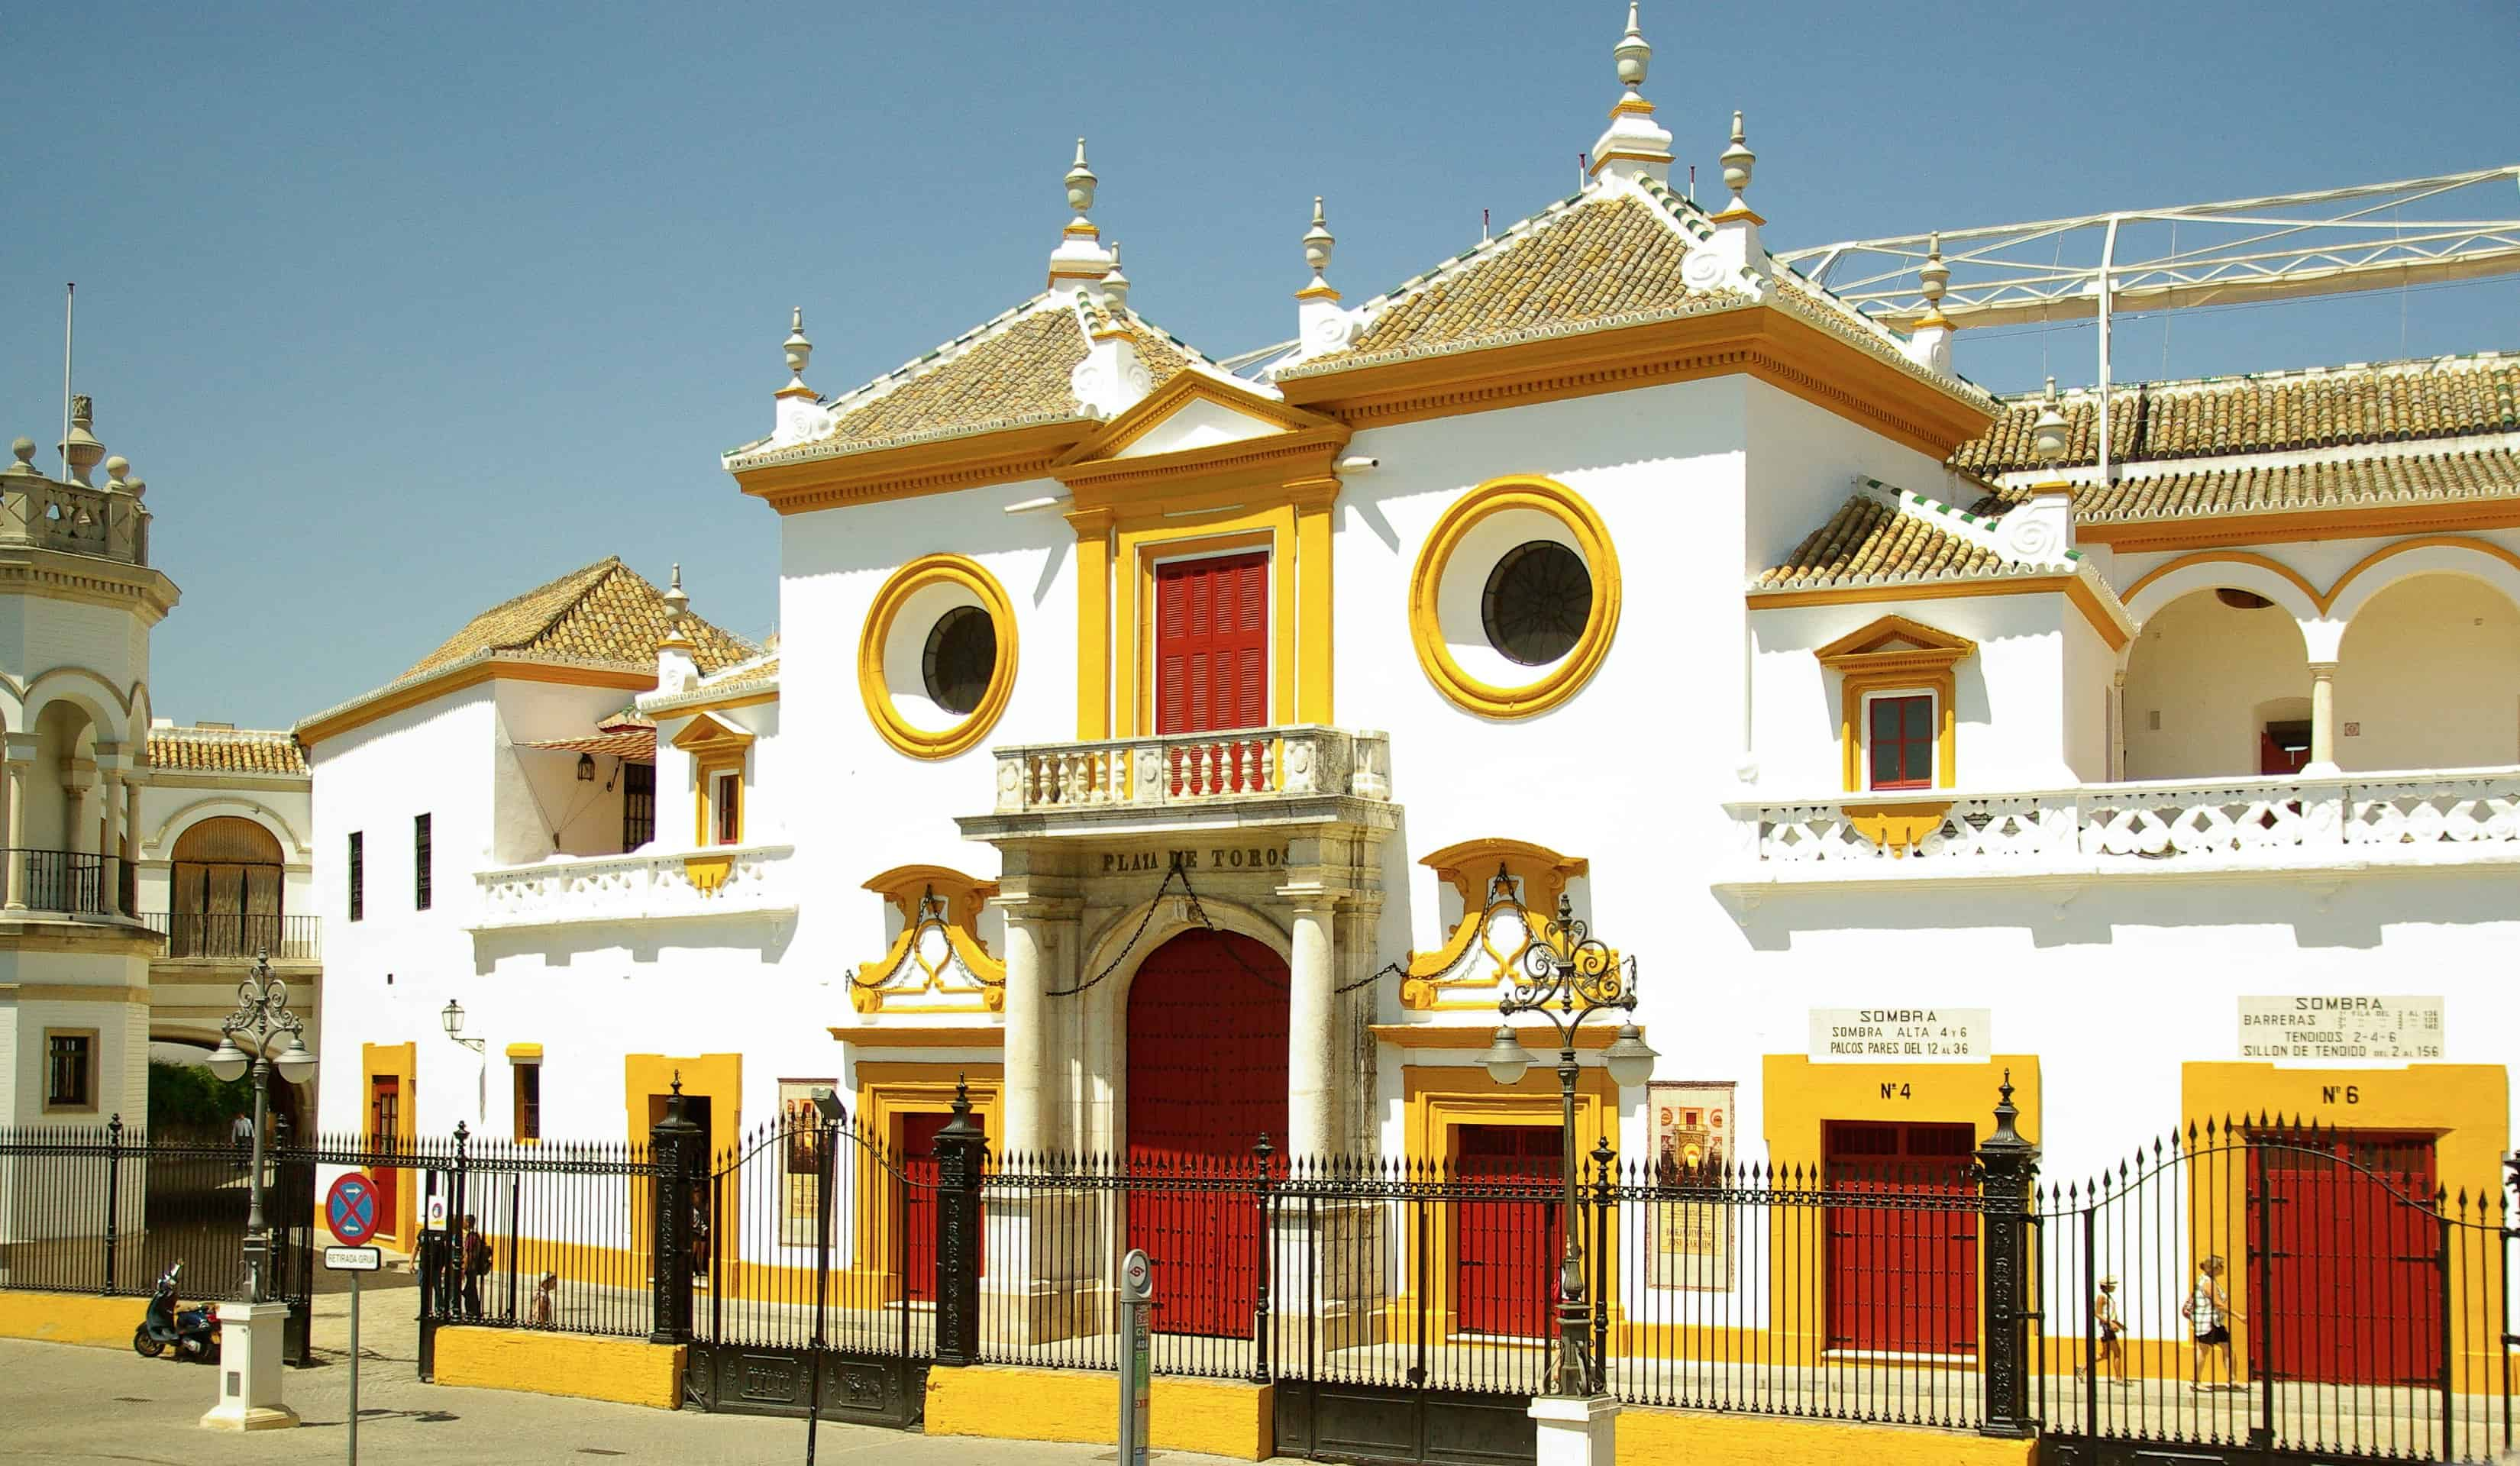 External view of the bullring in Seville, Spain